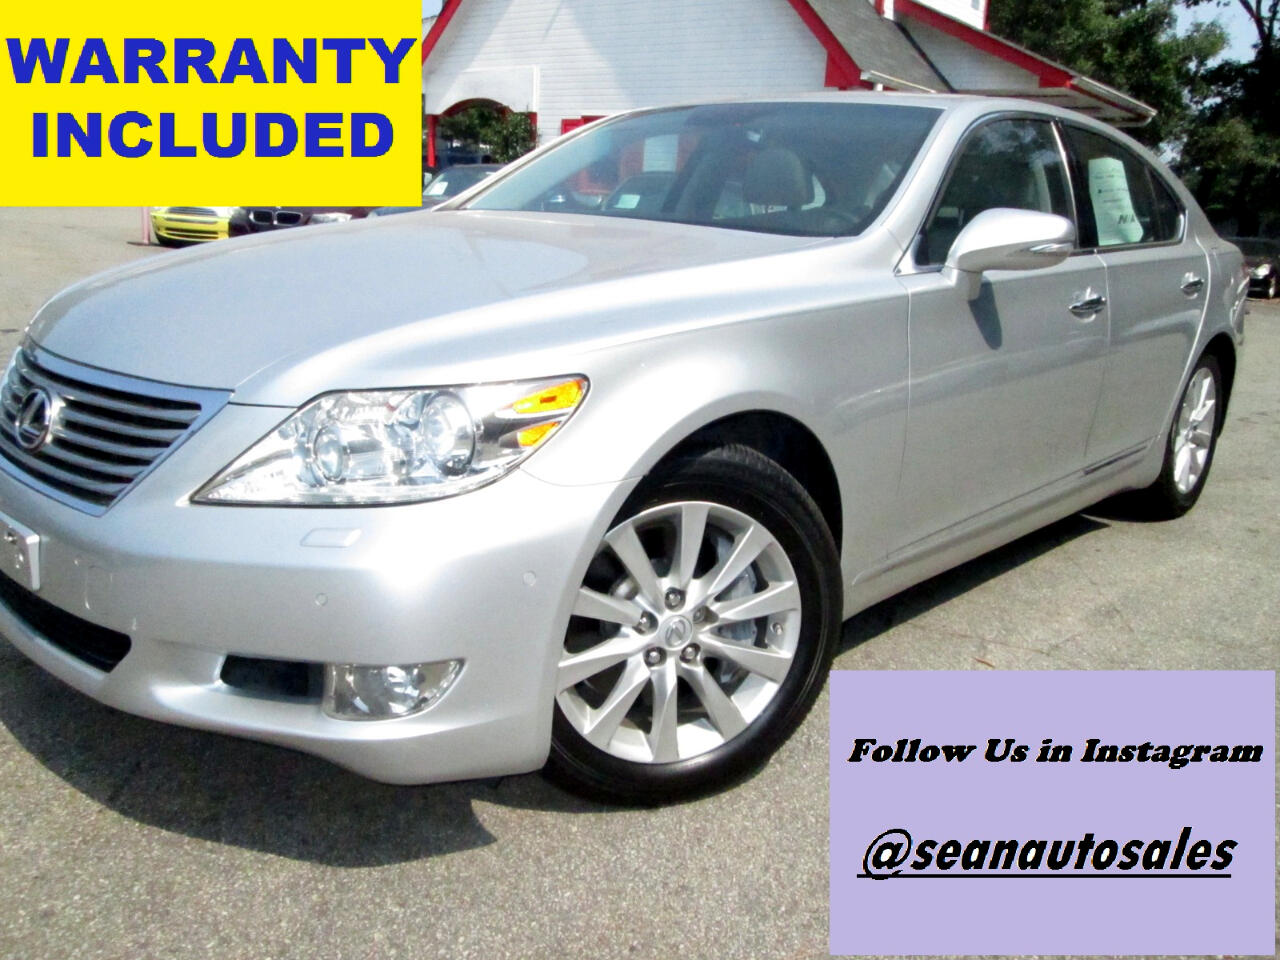 Lexus LS 460 Luxury Sedan AWD 2010